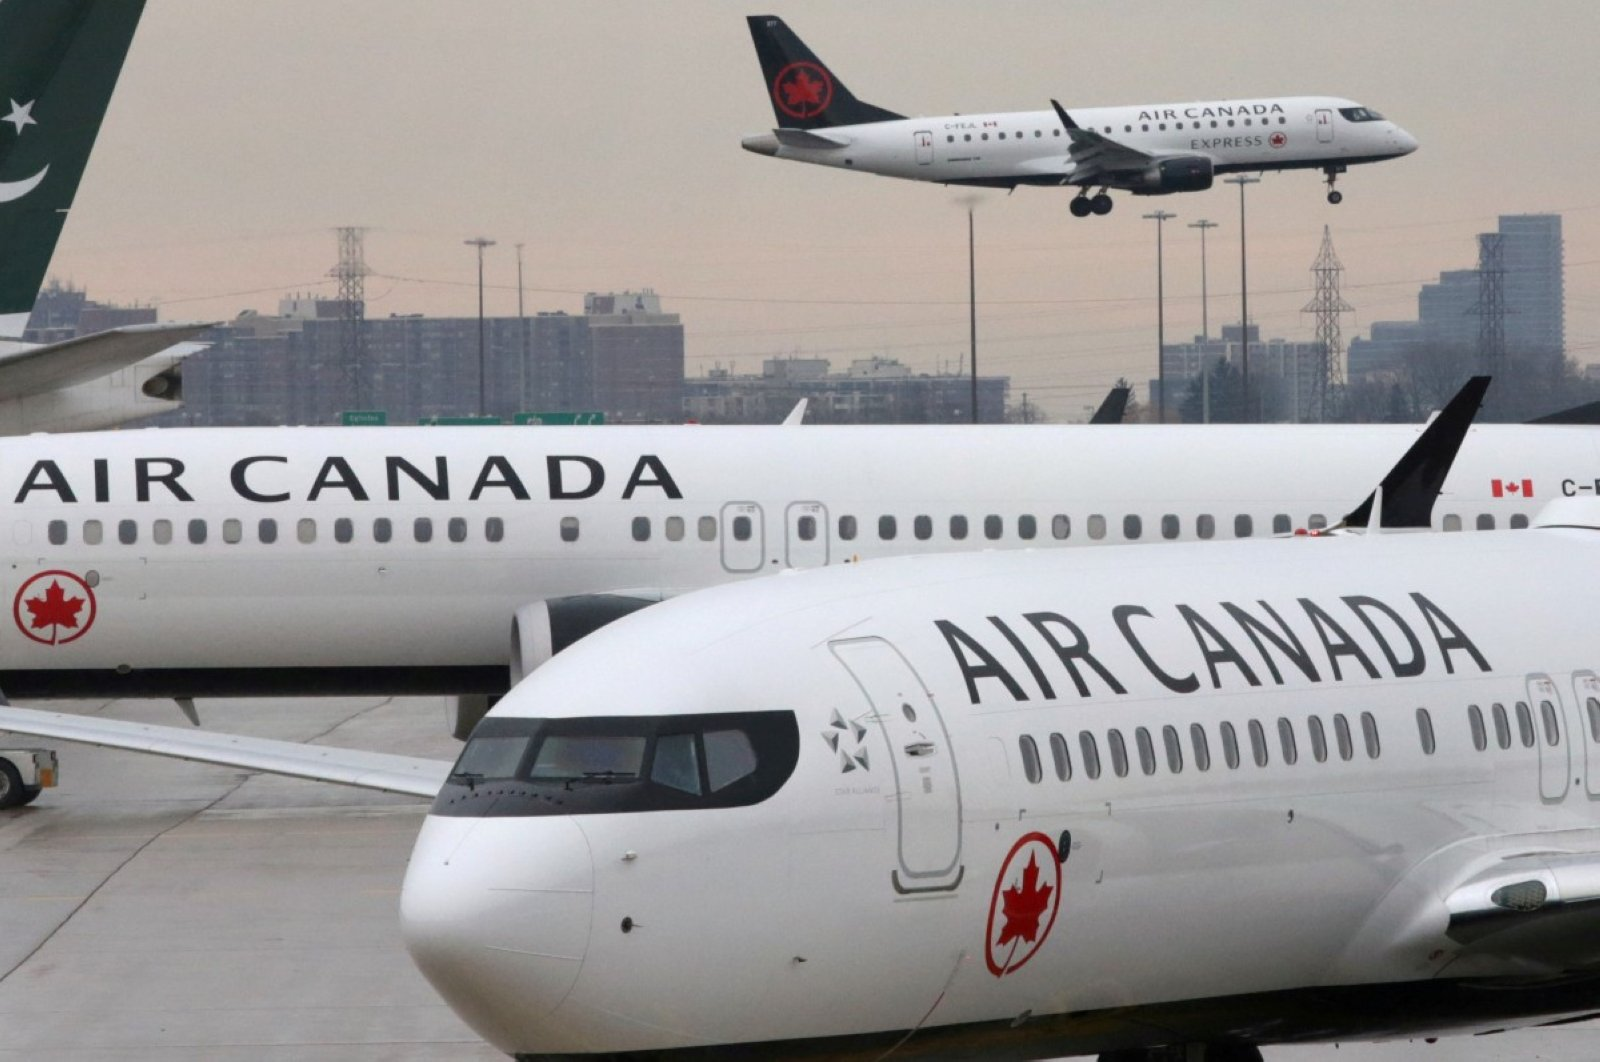 Two Air Canada Boeing 737 MAX 8 aircrafts are seen on the ground as Air Canada Embraer aircraft flies in the background at Toronto Pearson International Airport in Toronto, Ontario, Canada, March 13, 2019. (REUTERS Photo)